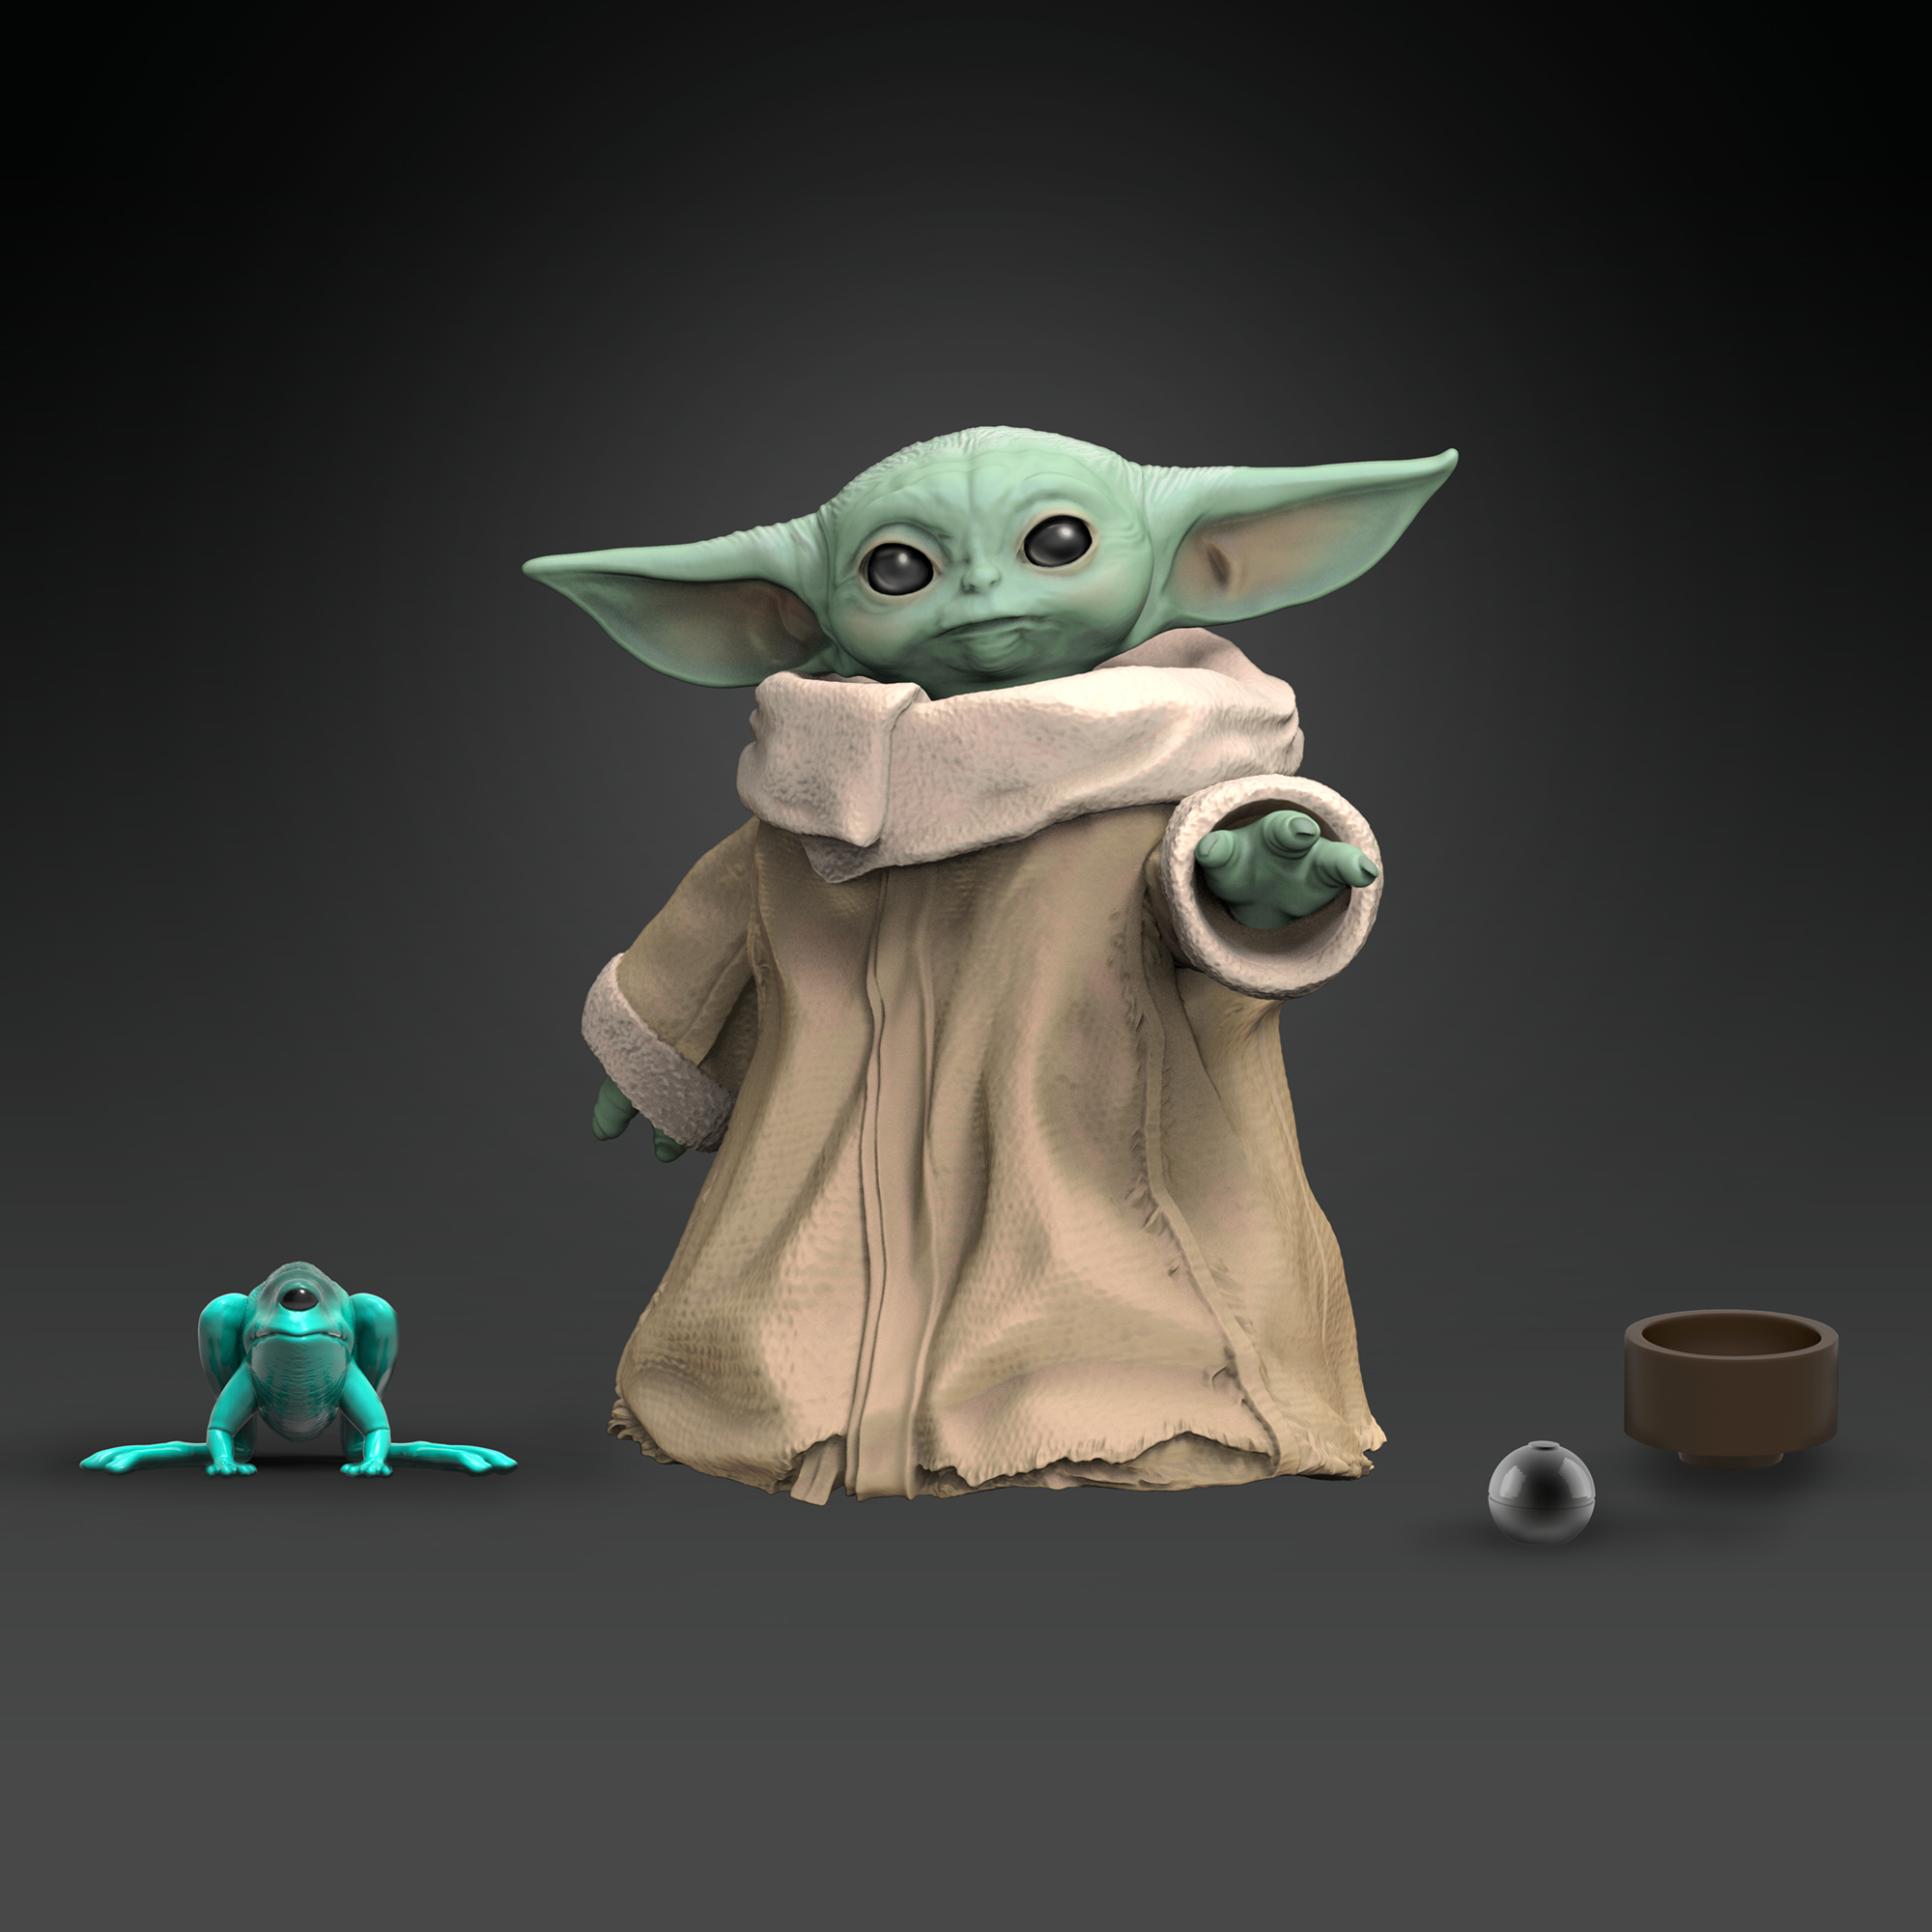 The Baby Yoda toys we've been waiting for are finally here